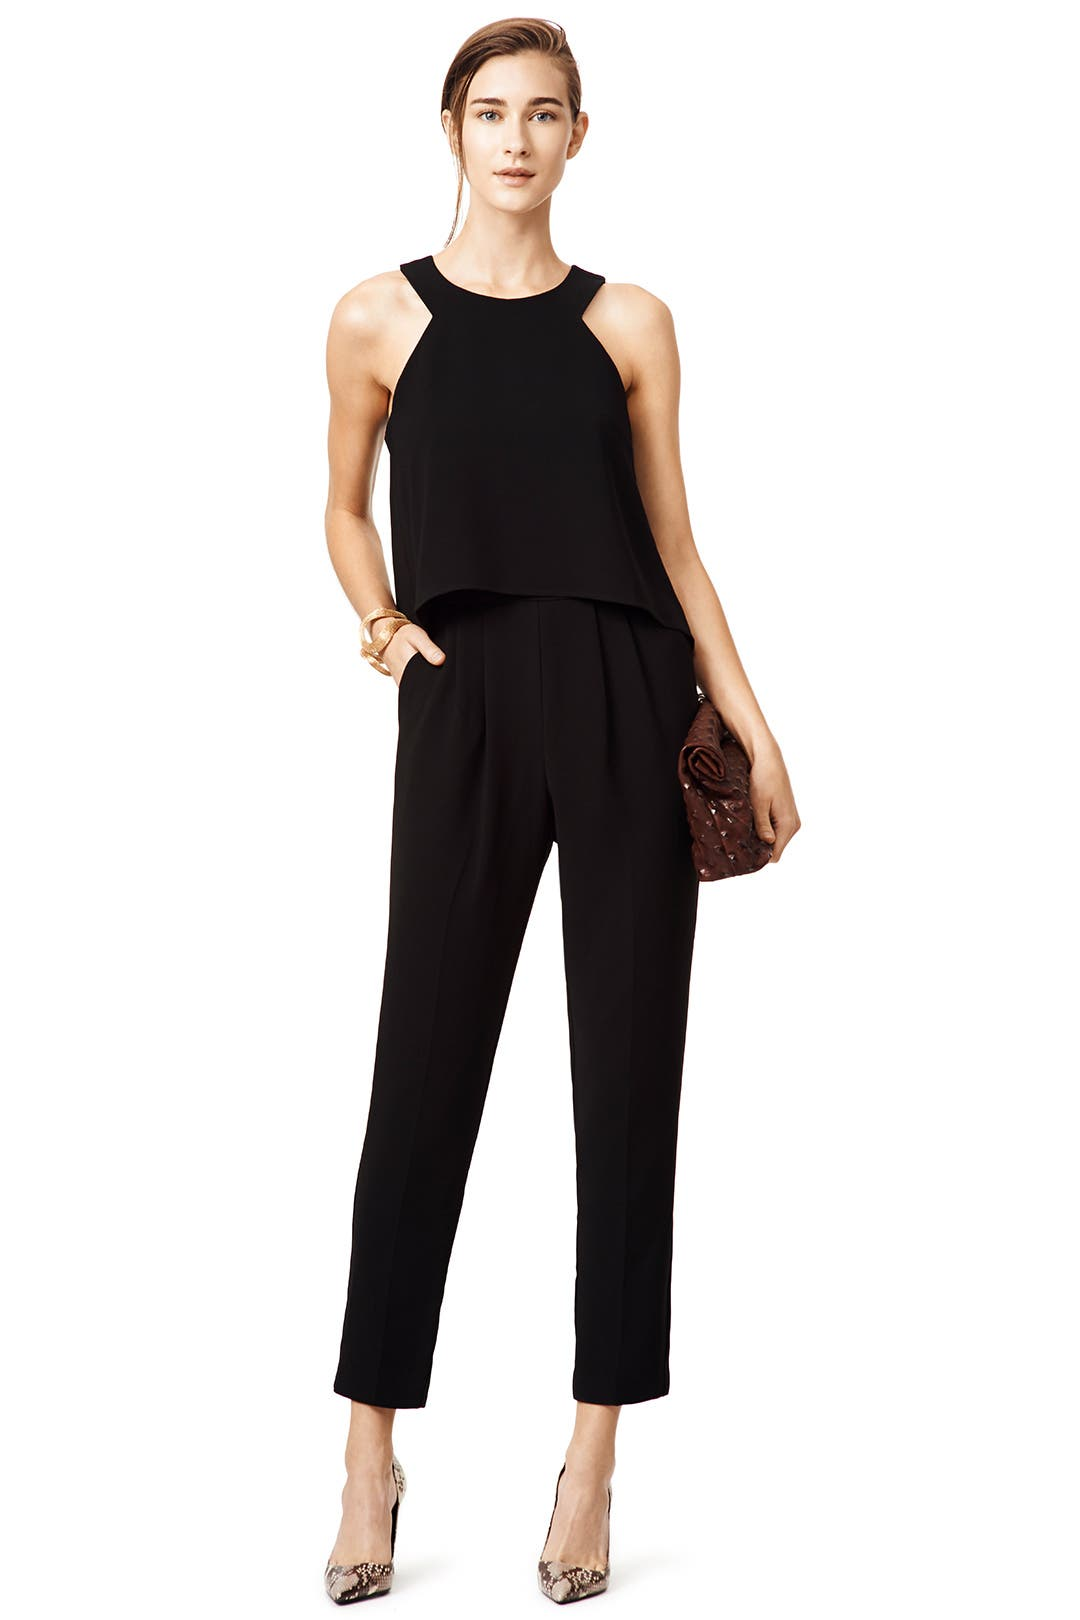 Black Anchors Jumpsuit by Trina Turk for $30 | Rent the Runway